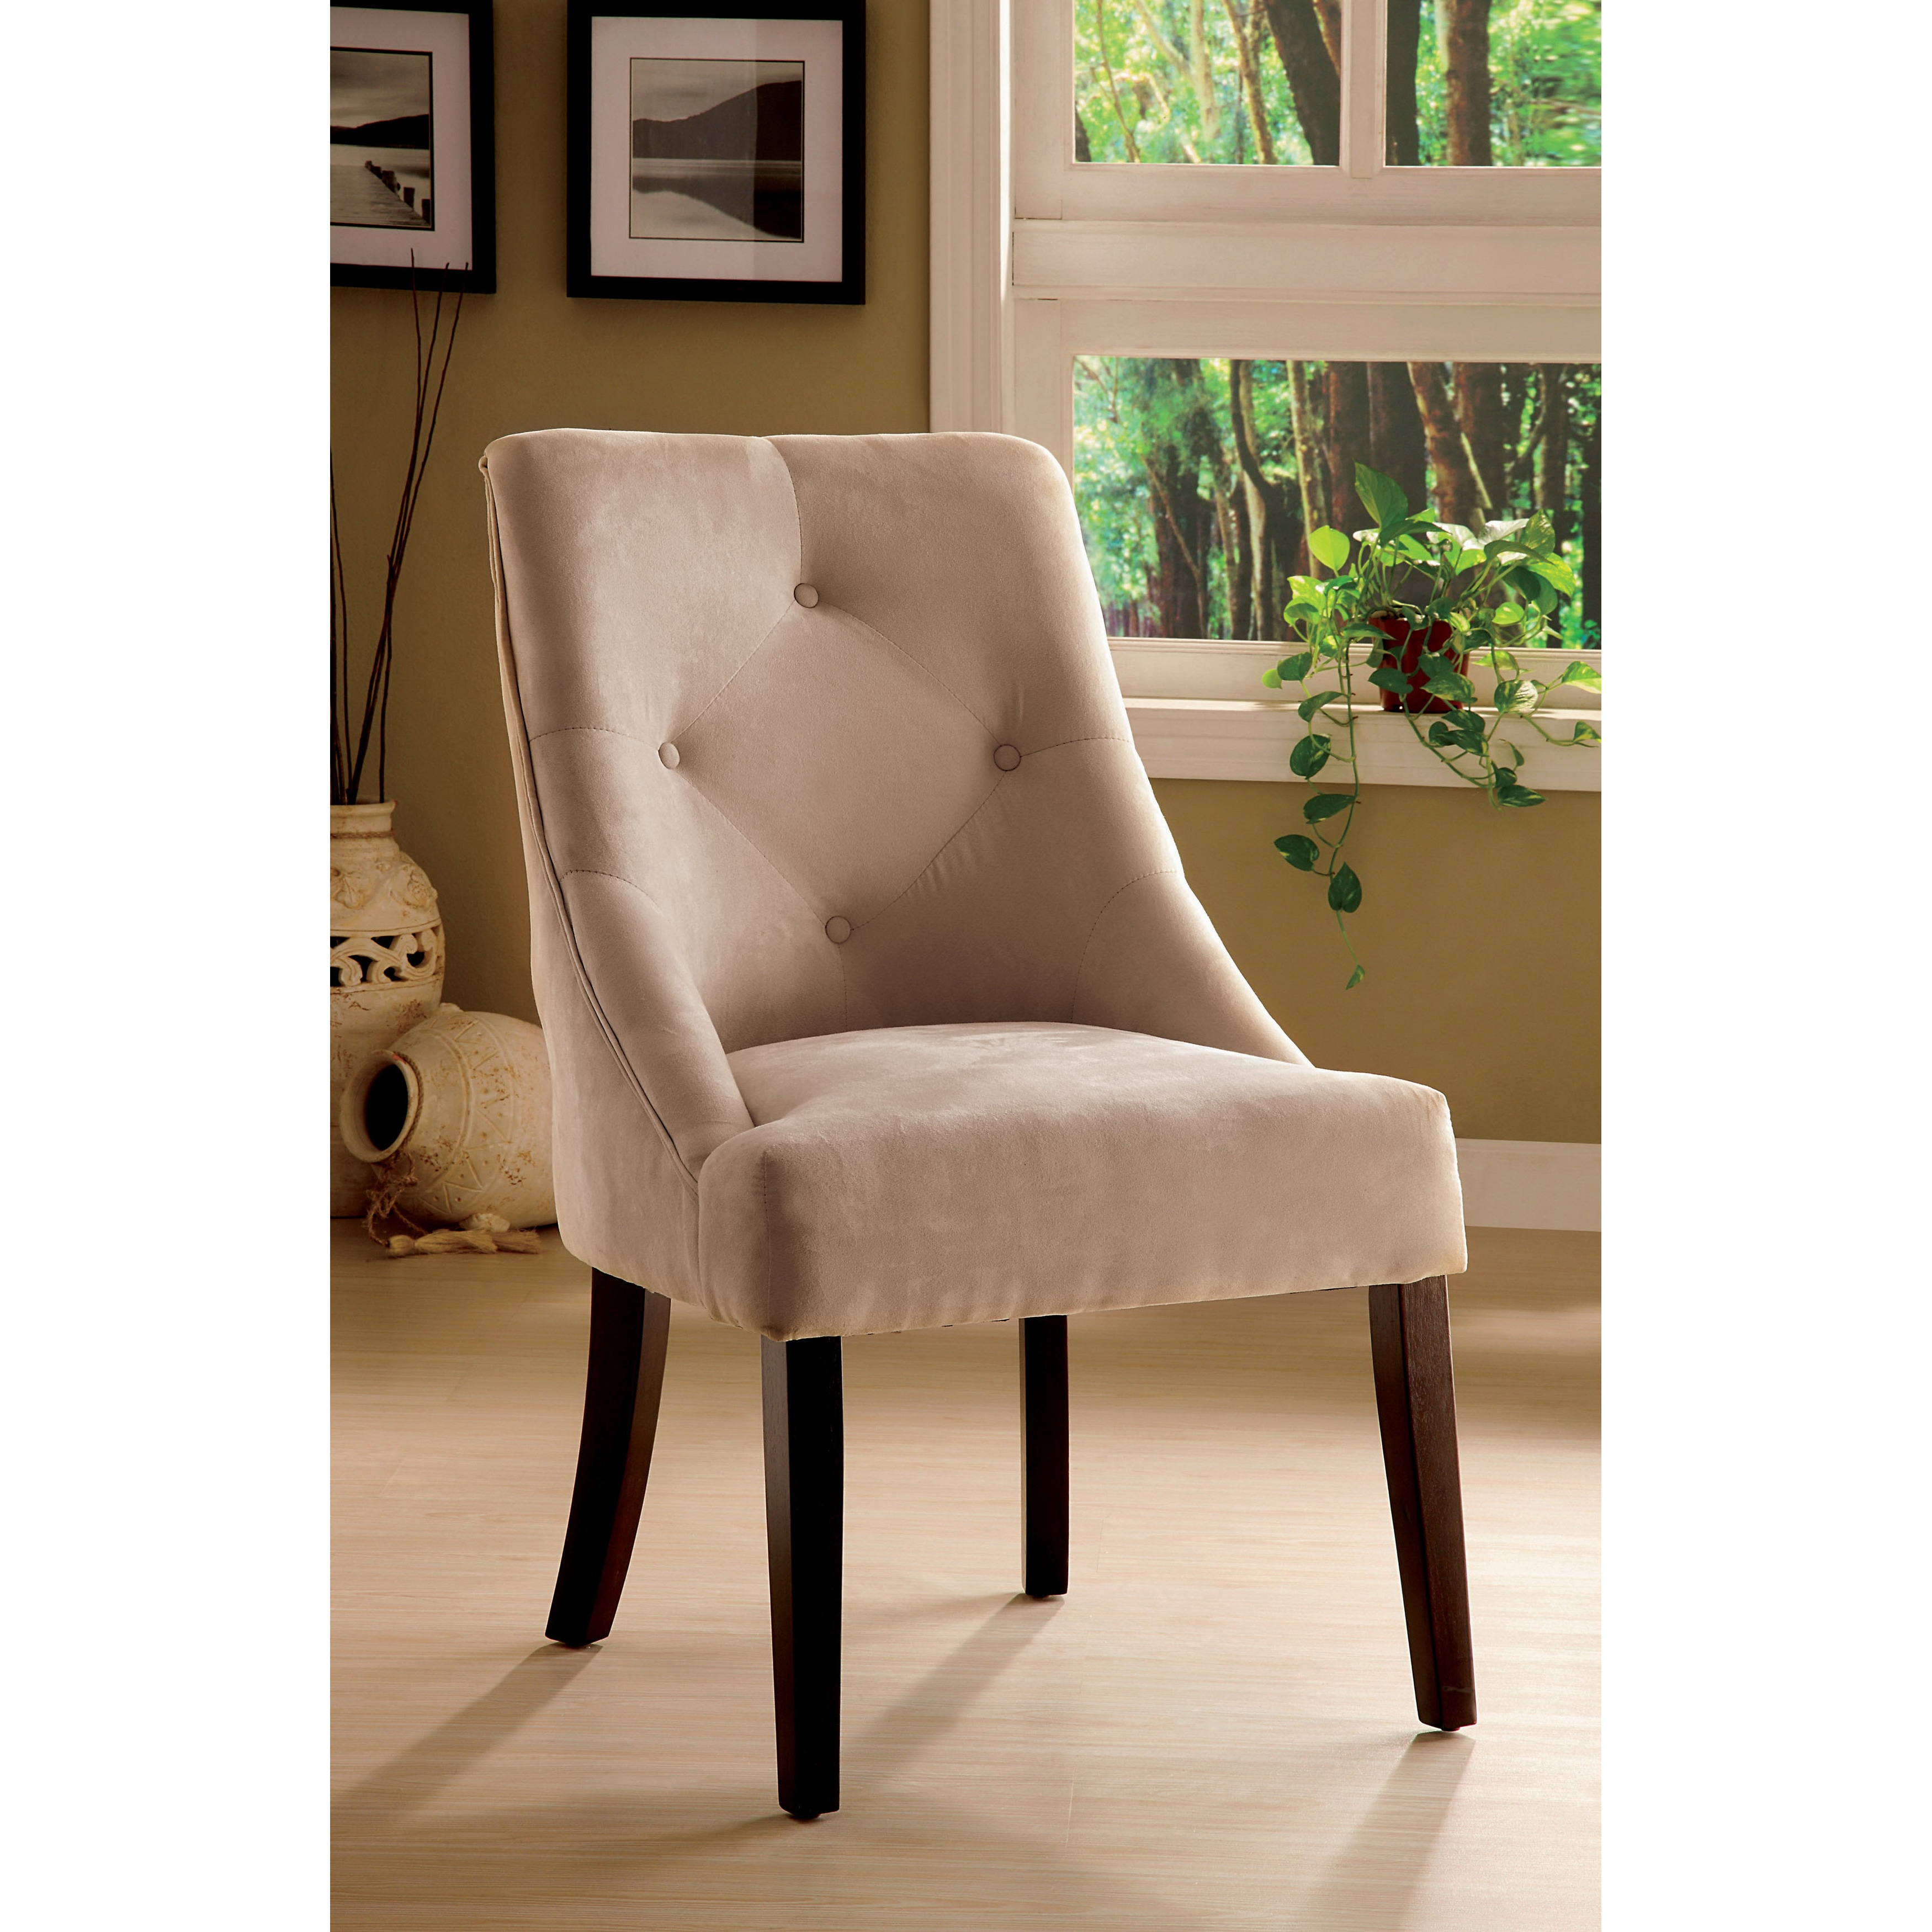 Microfiber Dining Chairs Furniture Of America Mocha Aura Leisure Microfiber Dining